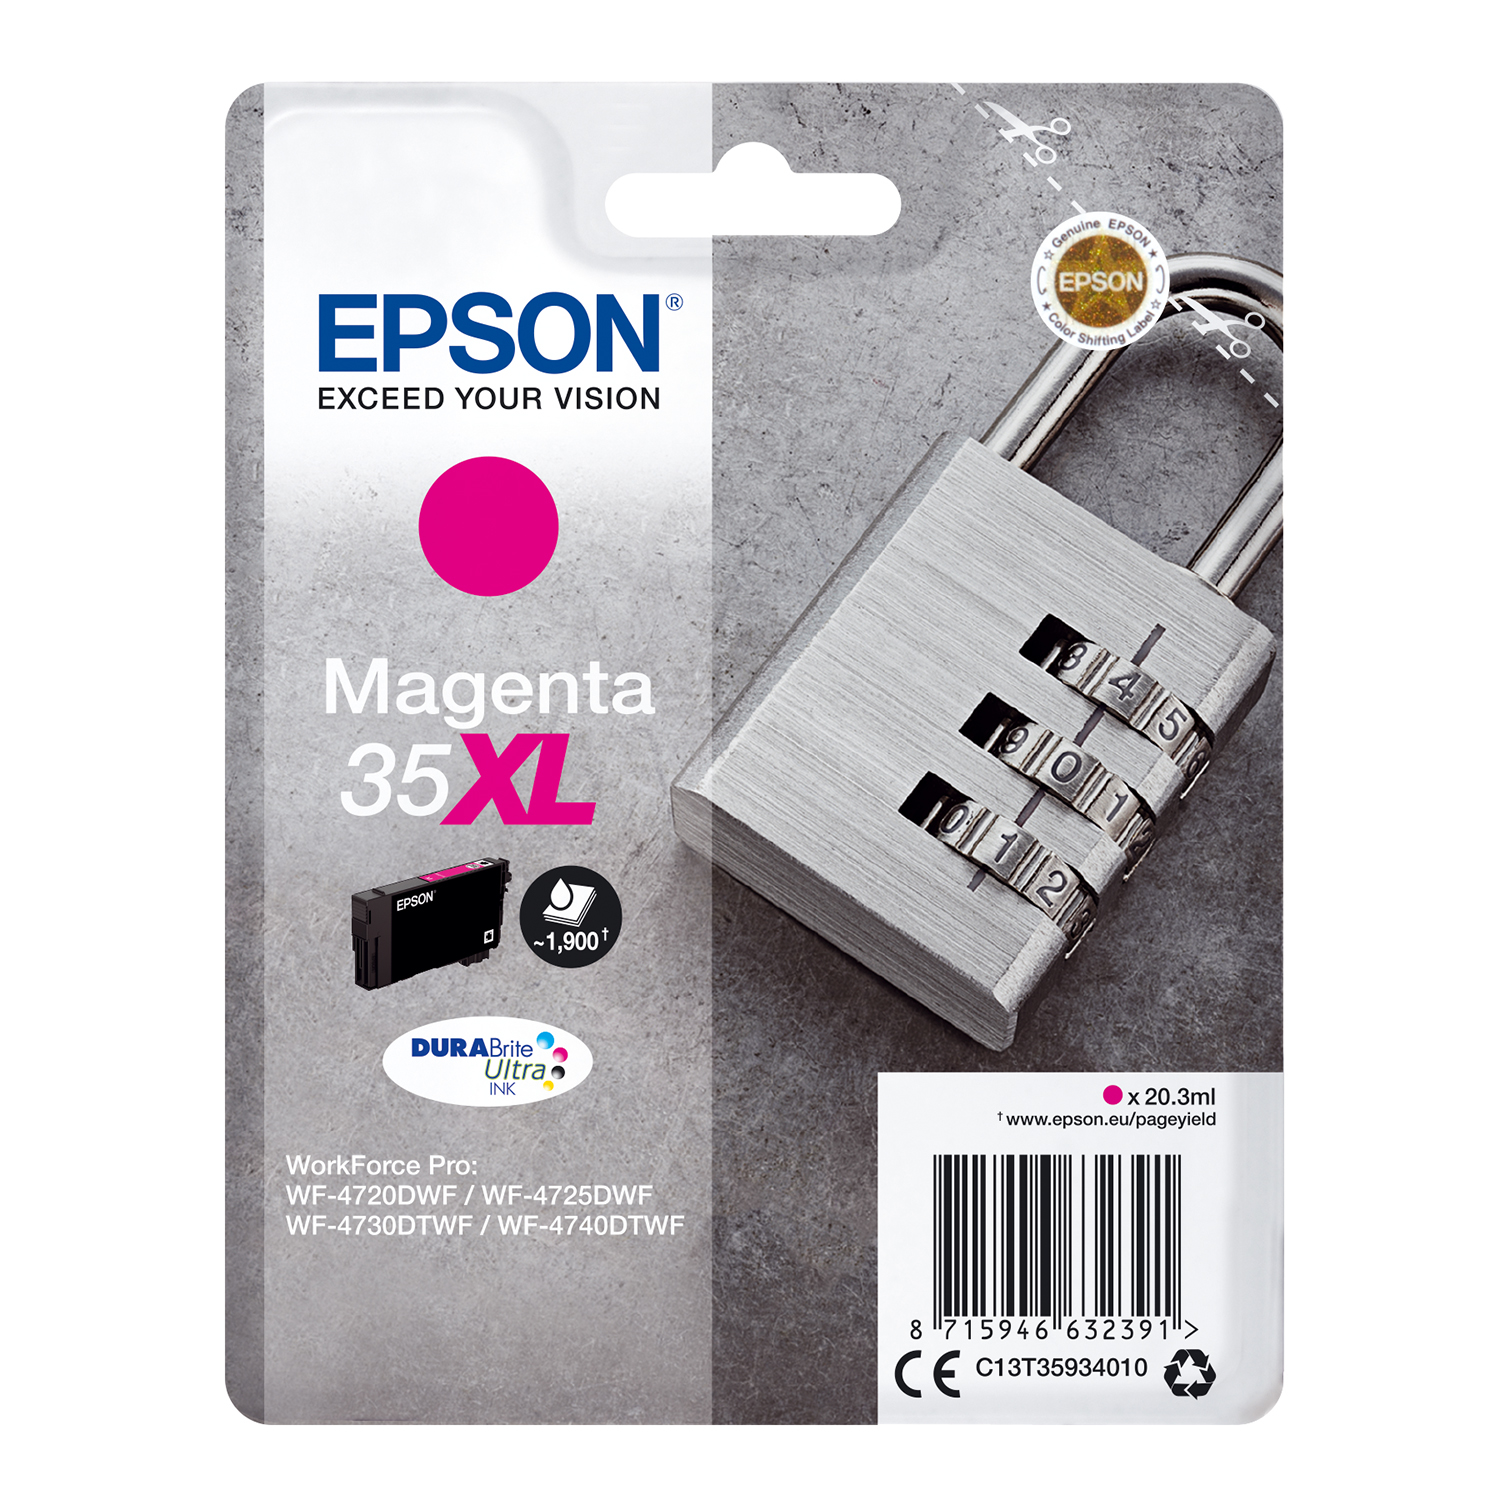 Ink cartridges Epson 35XL Inkjet Cartridge High Yield Page Life 1900pp 20.3ml Magenta Ref C13T35934010